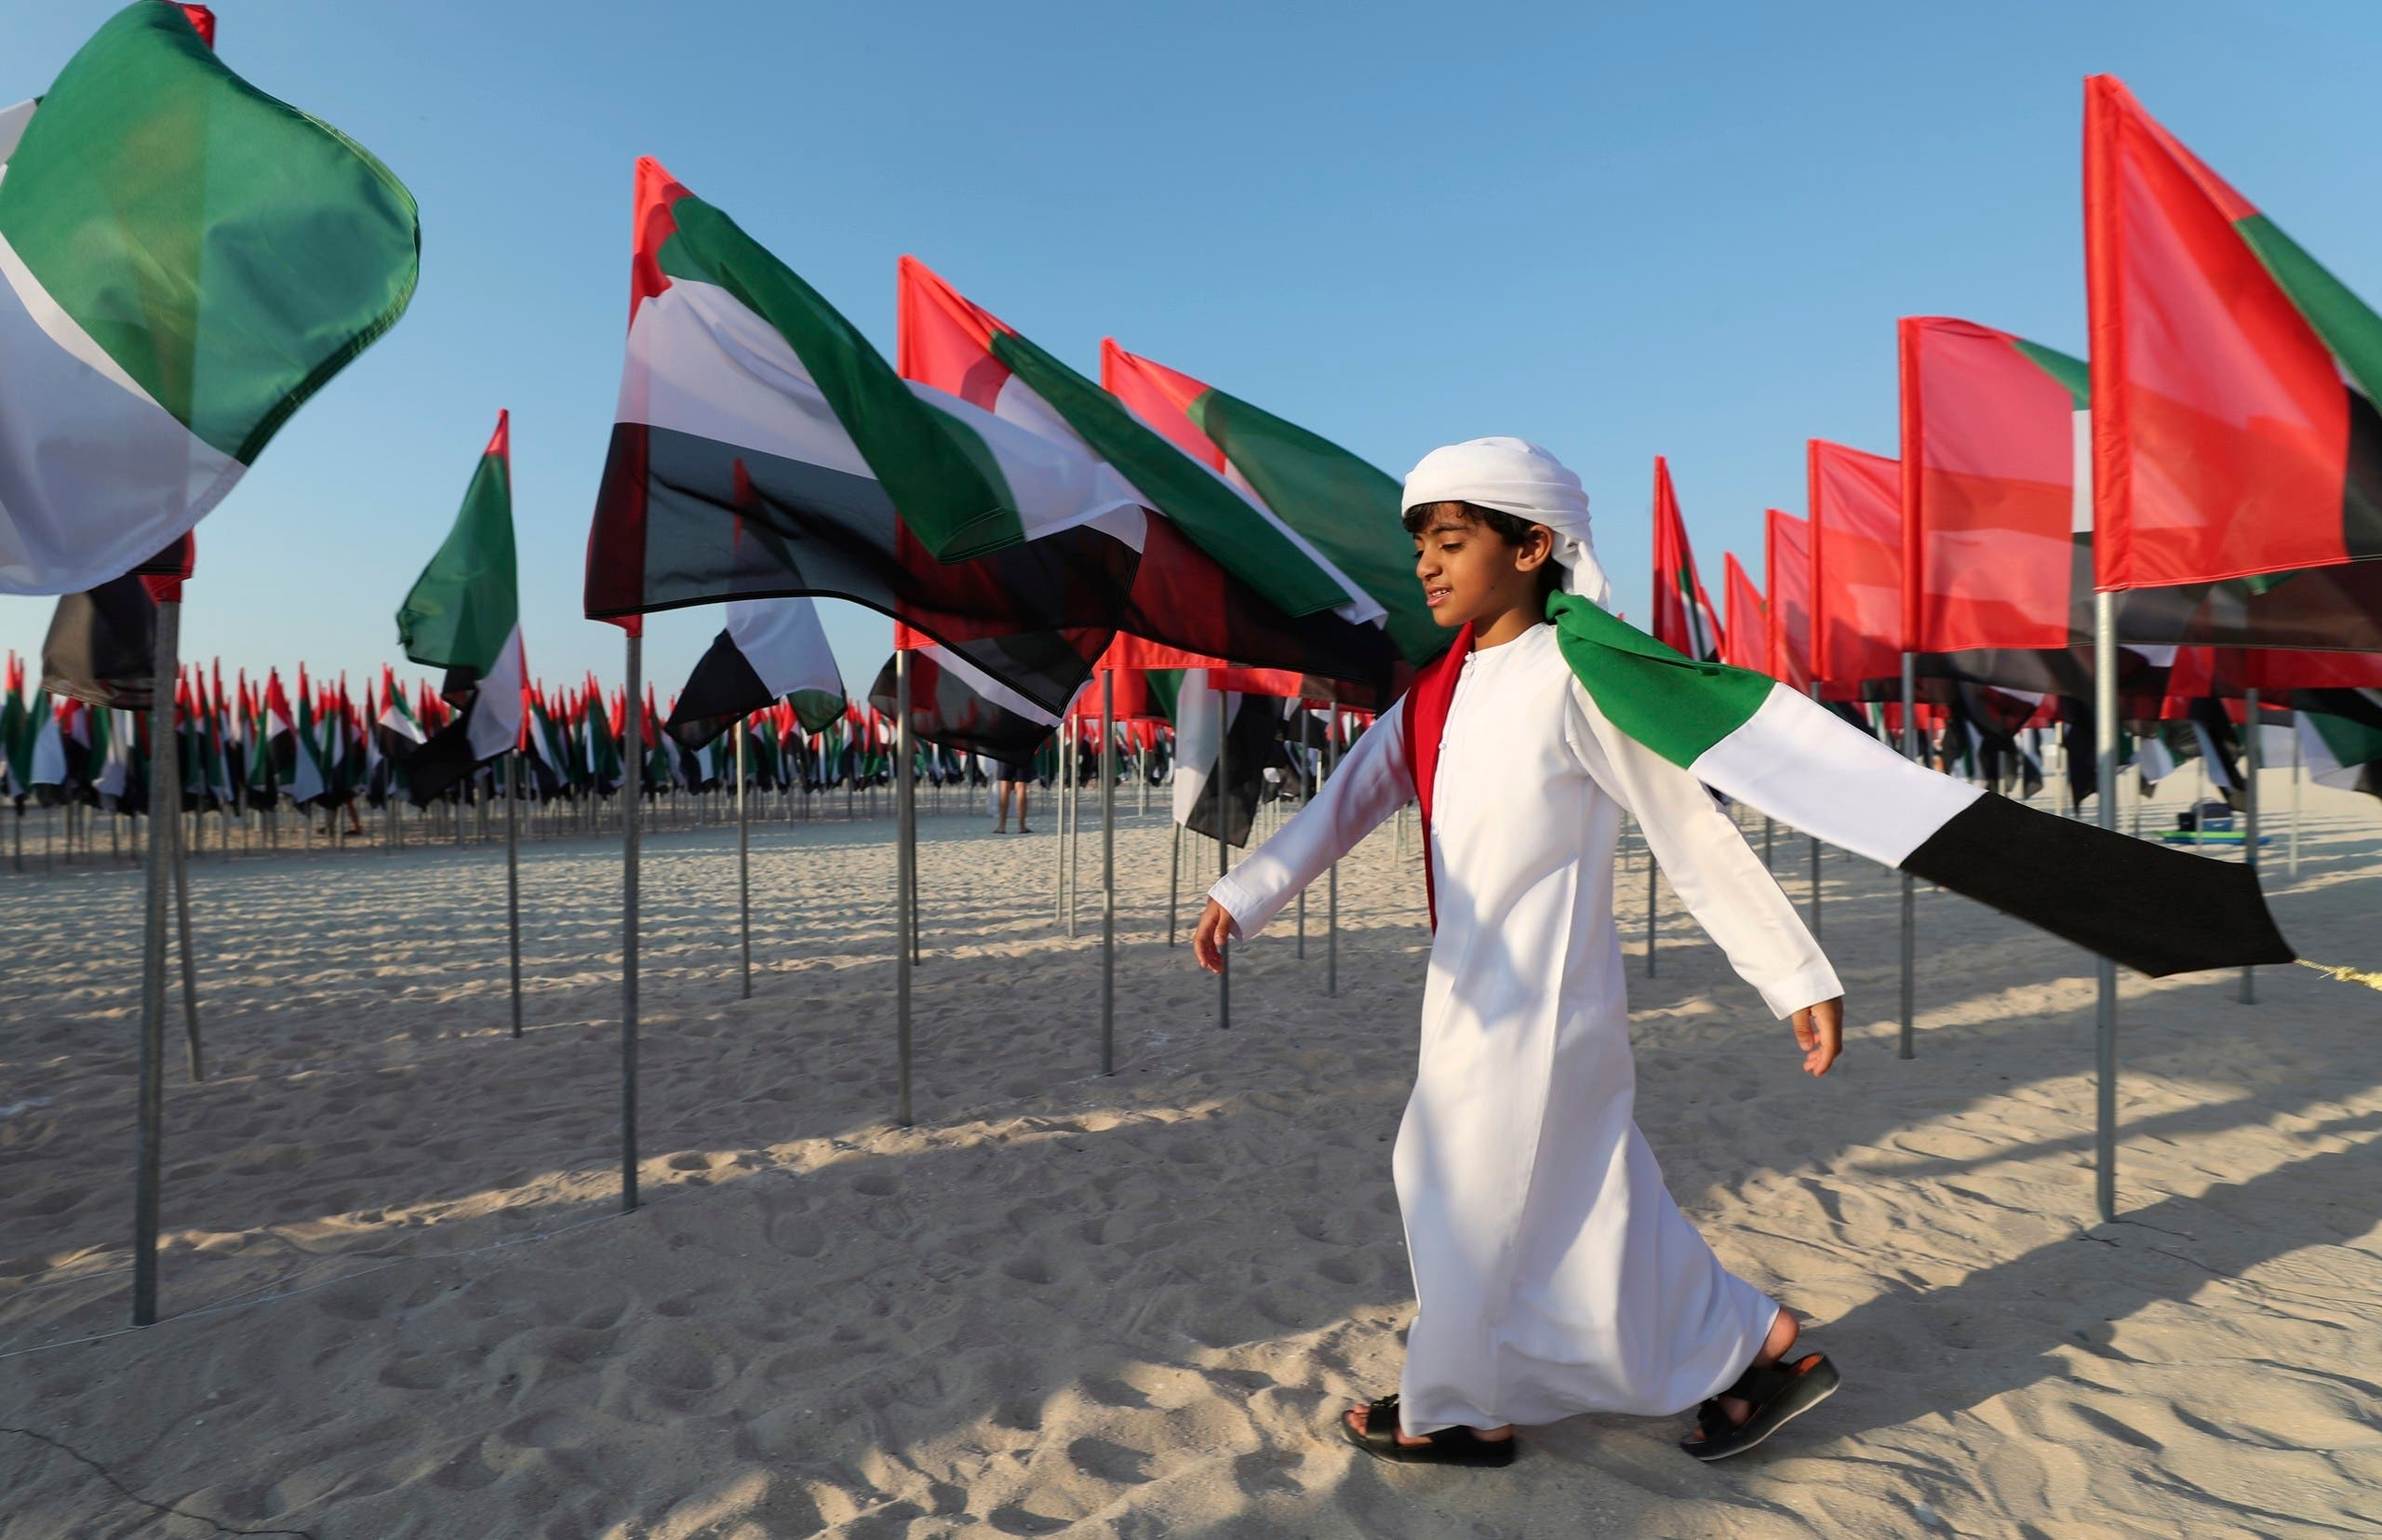 An Emirati boy walks among UAE national flags set up to celebrate the country's Flag Day in Dubai on Nov. 3, 2020. (AP)